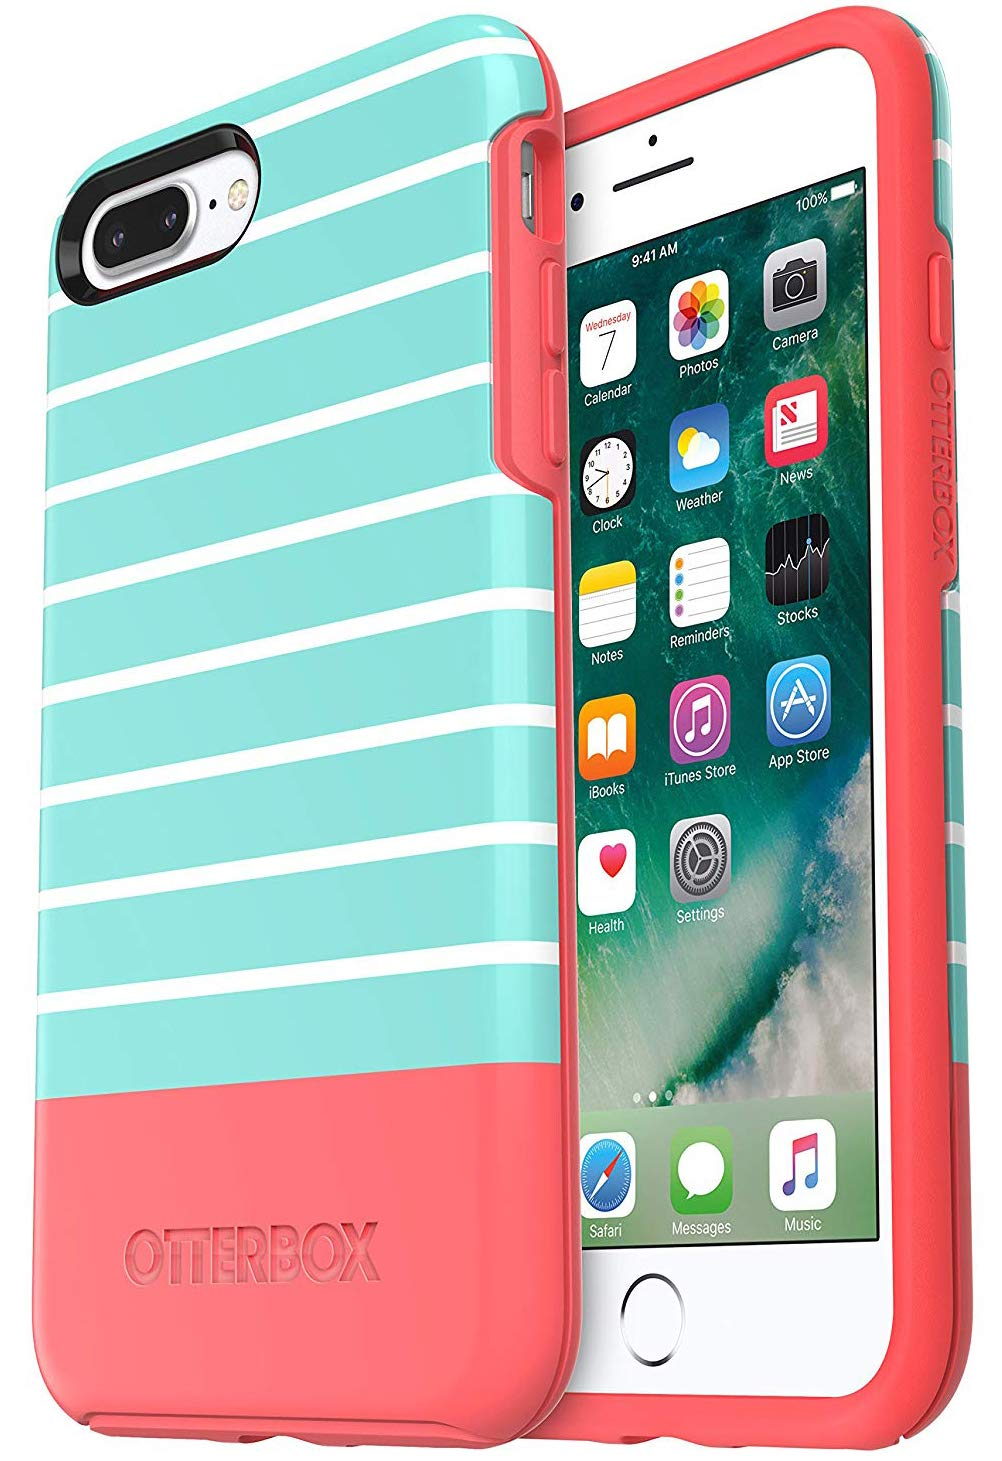 OtterBox Symmetry Series Case for iPhone 8 Plus & iPhone 7 Plus - Non-Retail Packaging - Aqua Mint DIP by OtterBox (Image #1)